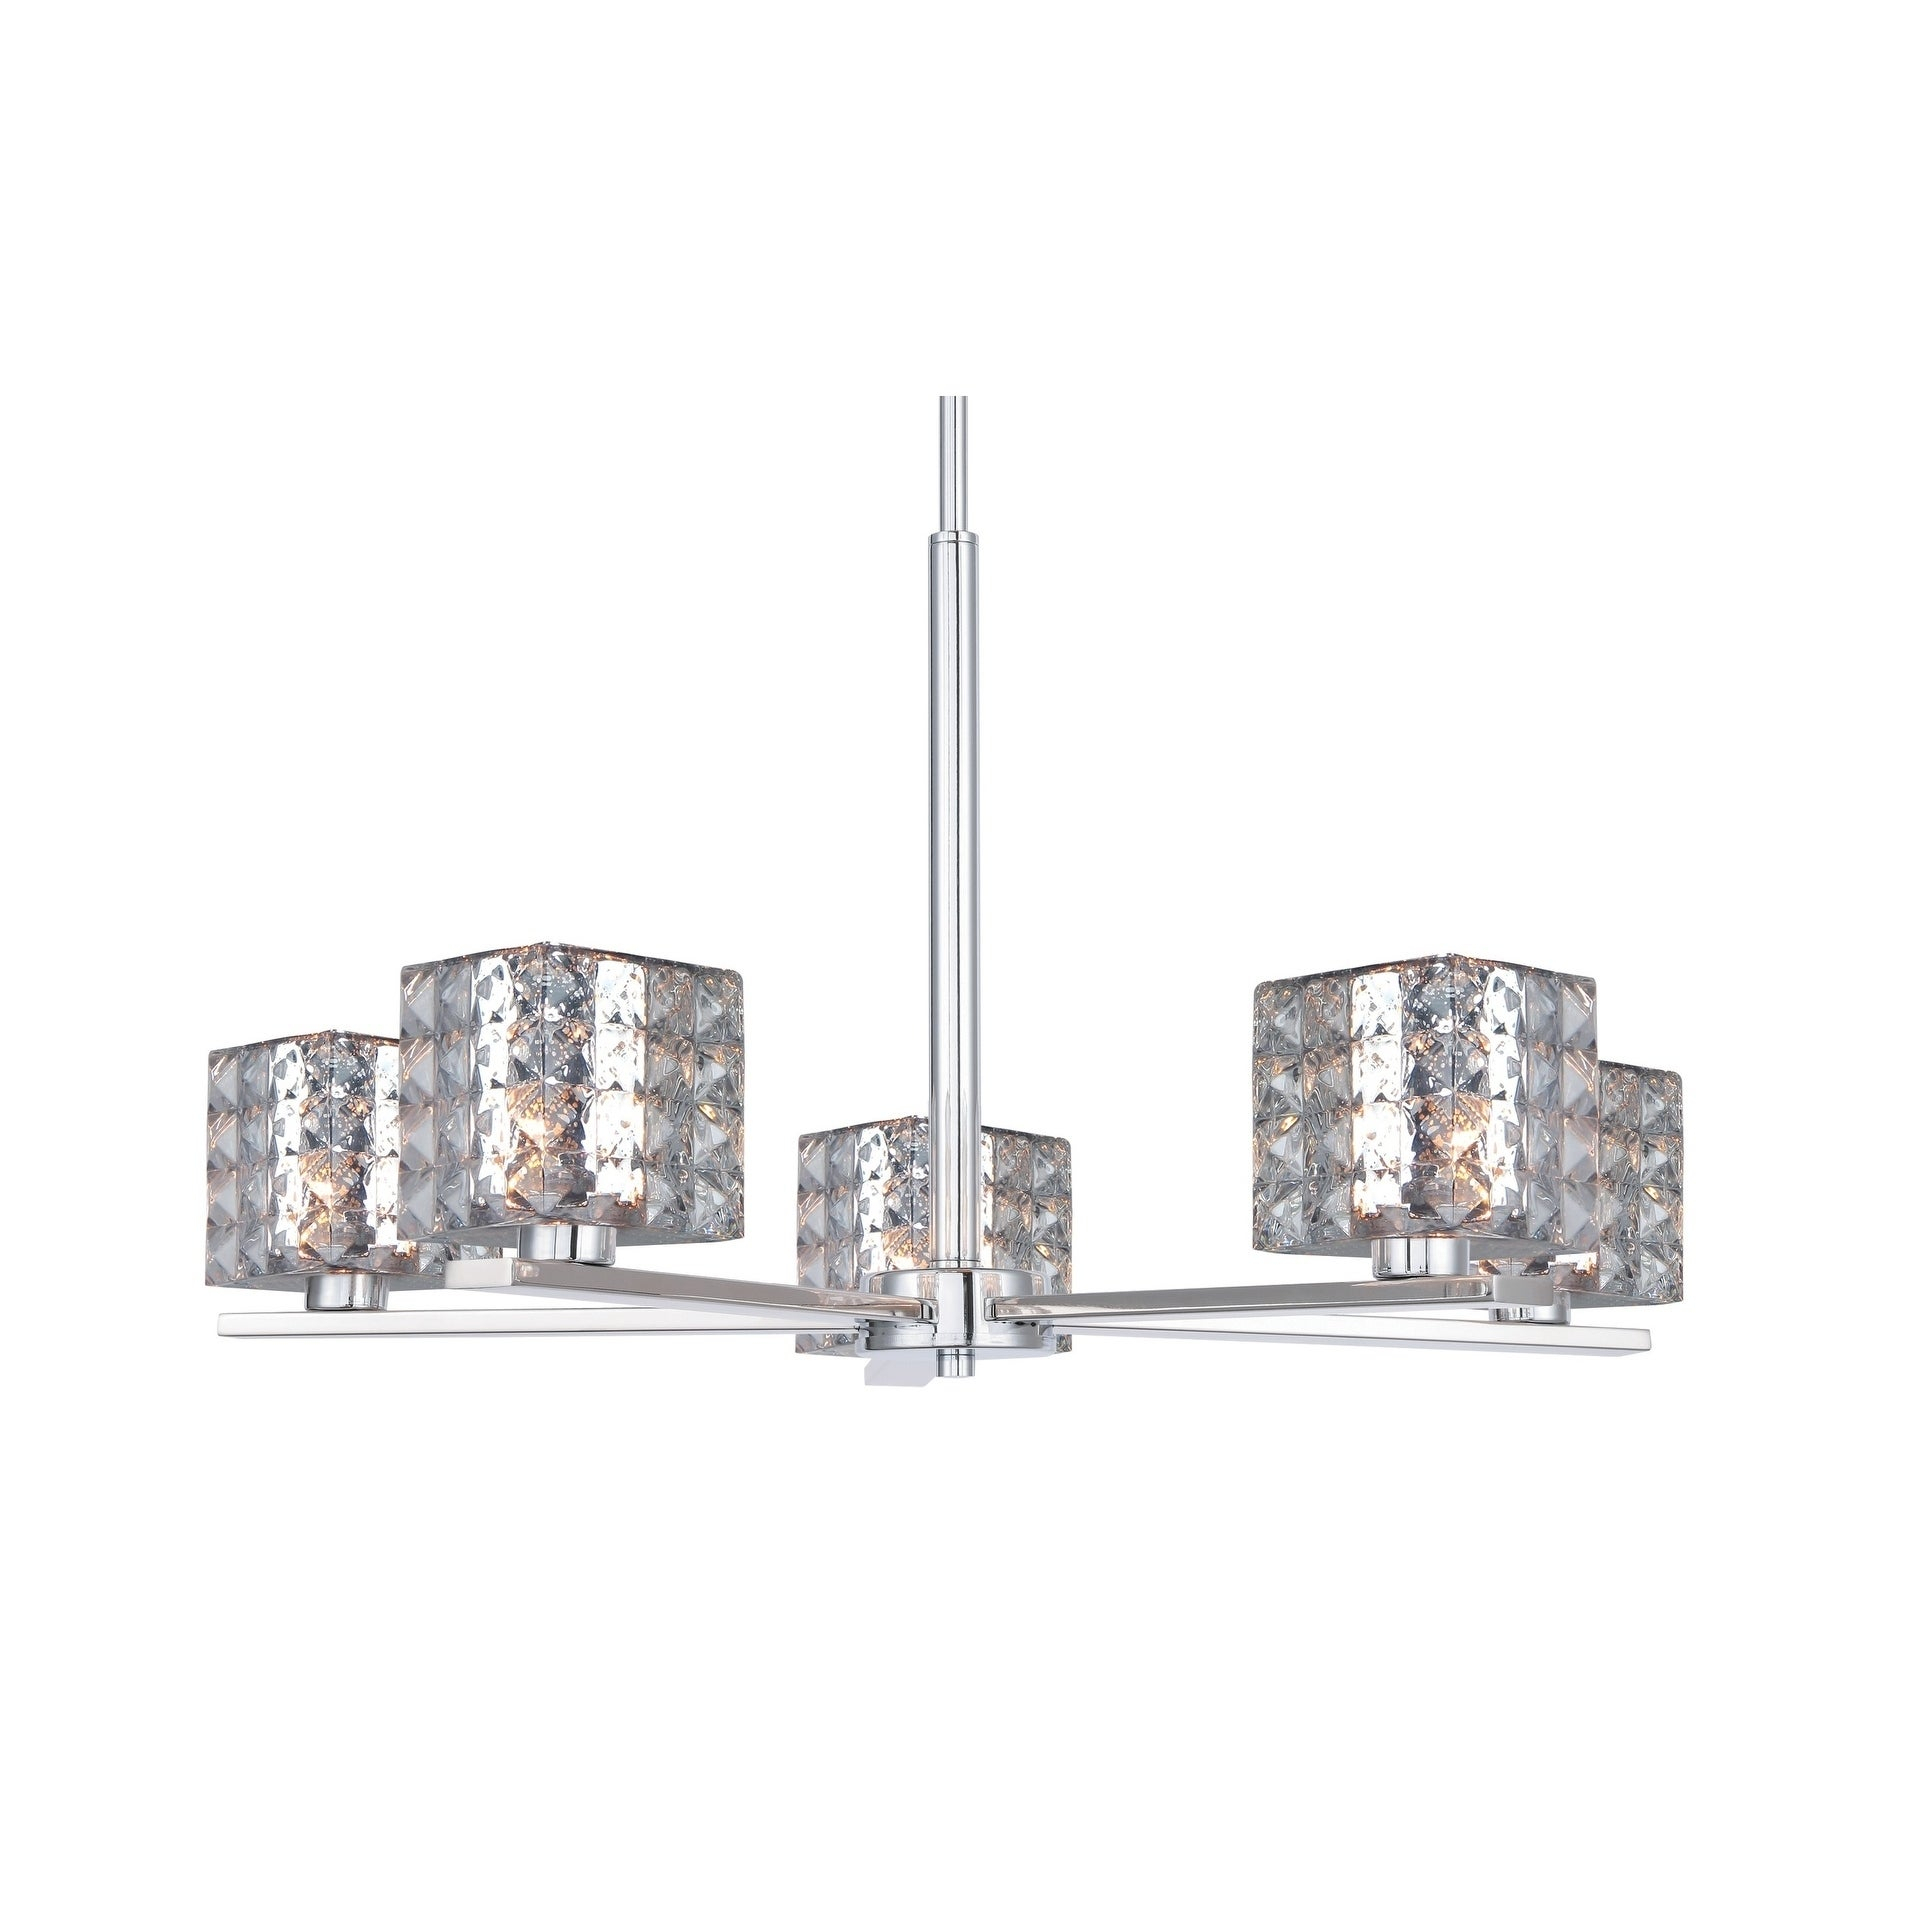 Woodbridge 17315chrle Claudia 5l Chandelier W/ Led With Regard To Hewitt 4 Light Square Chandeliers (View 24 of 30)